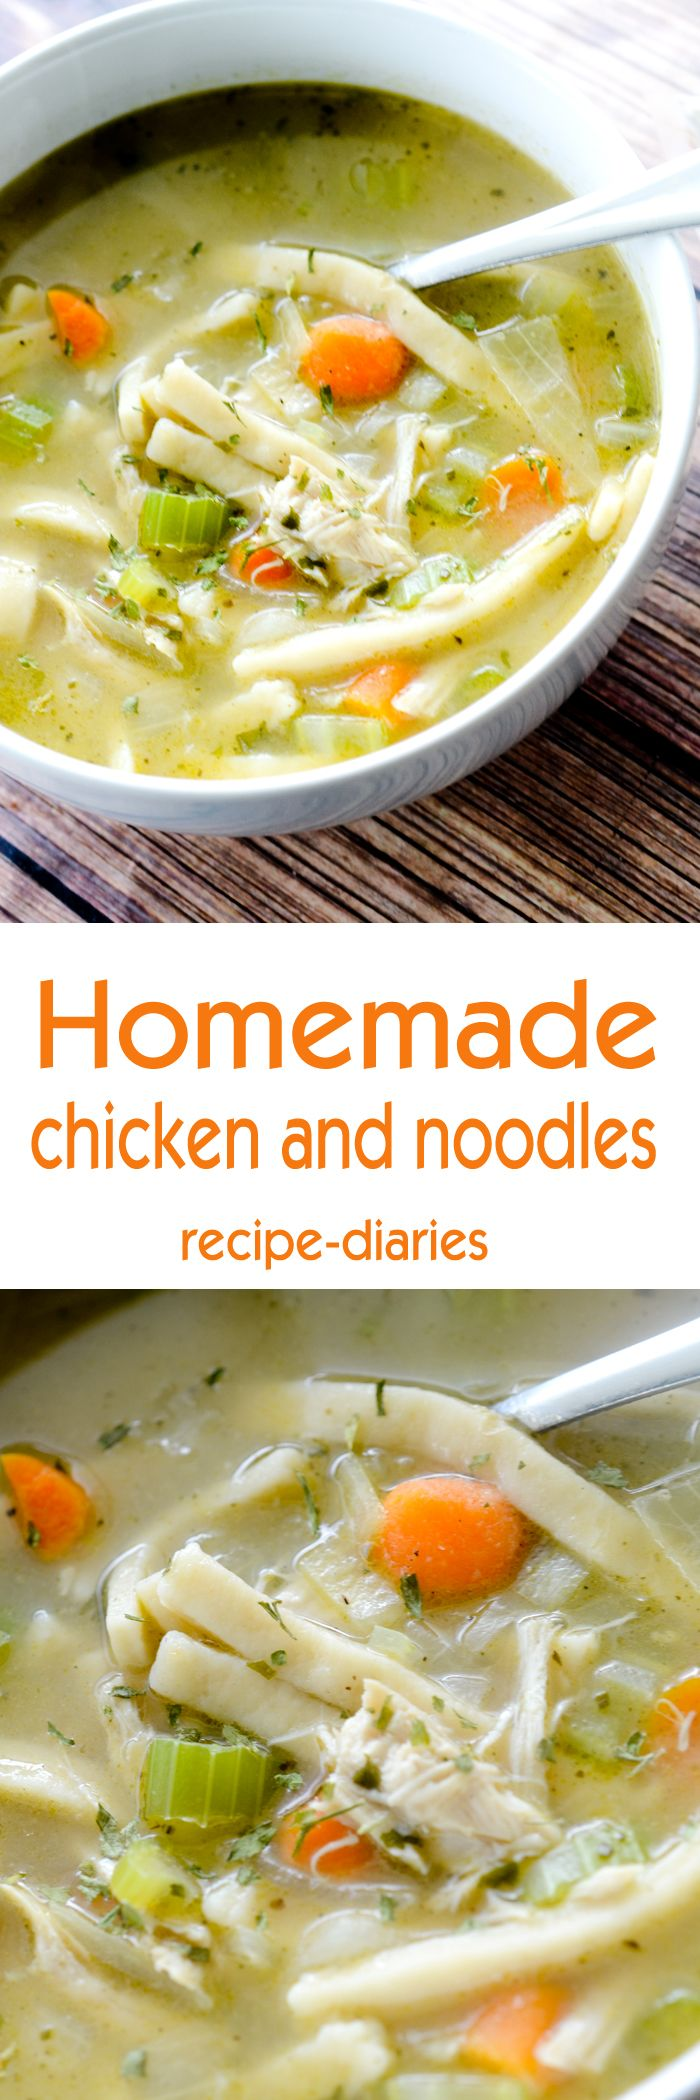 Homemade Chicken and Noodles - Recipe Diaries